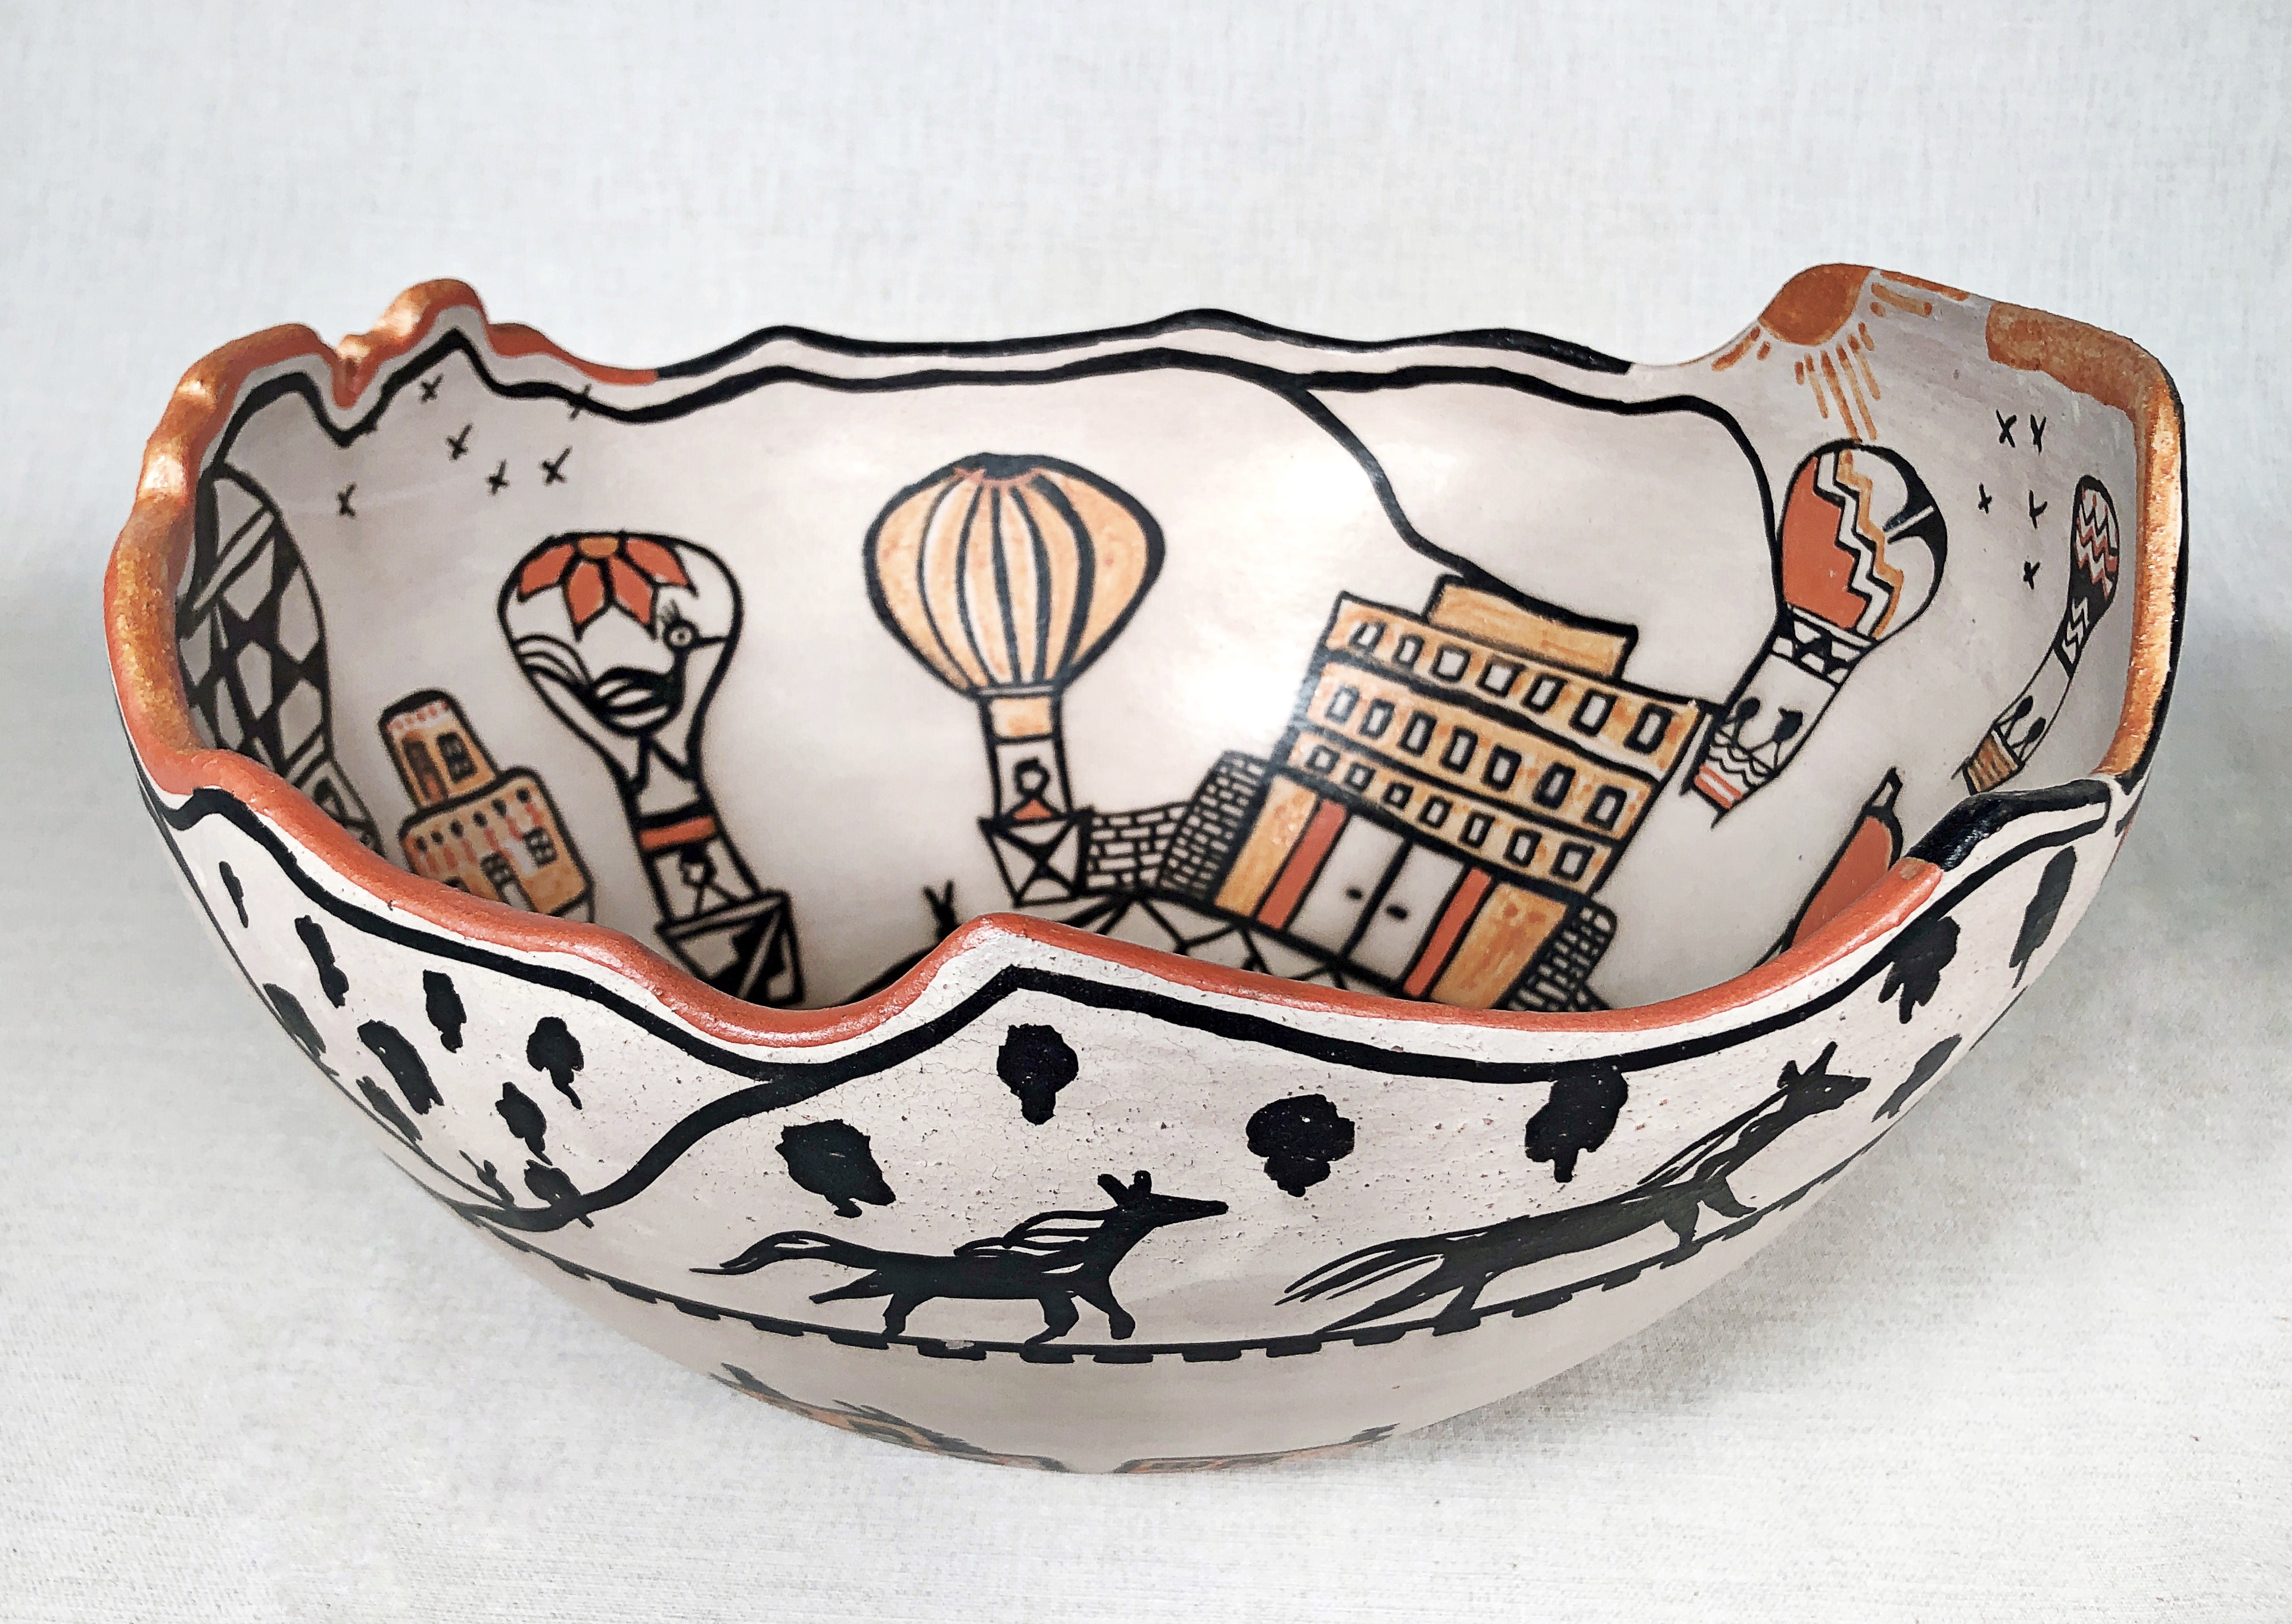 A large ceramic bowl with drawings of balloons and the Sandia Pueblo